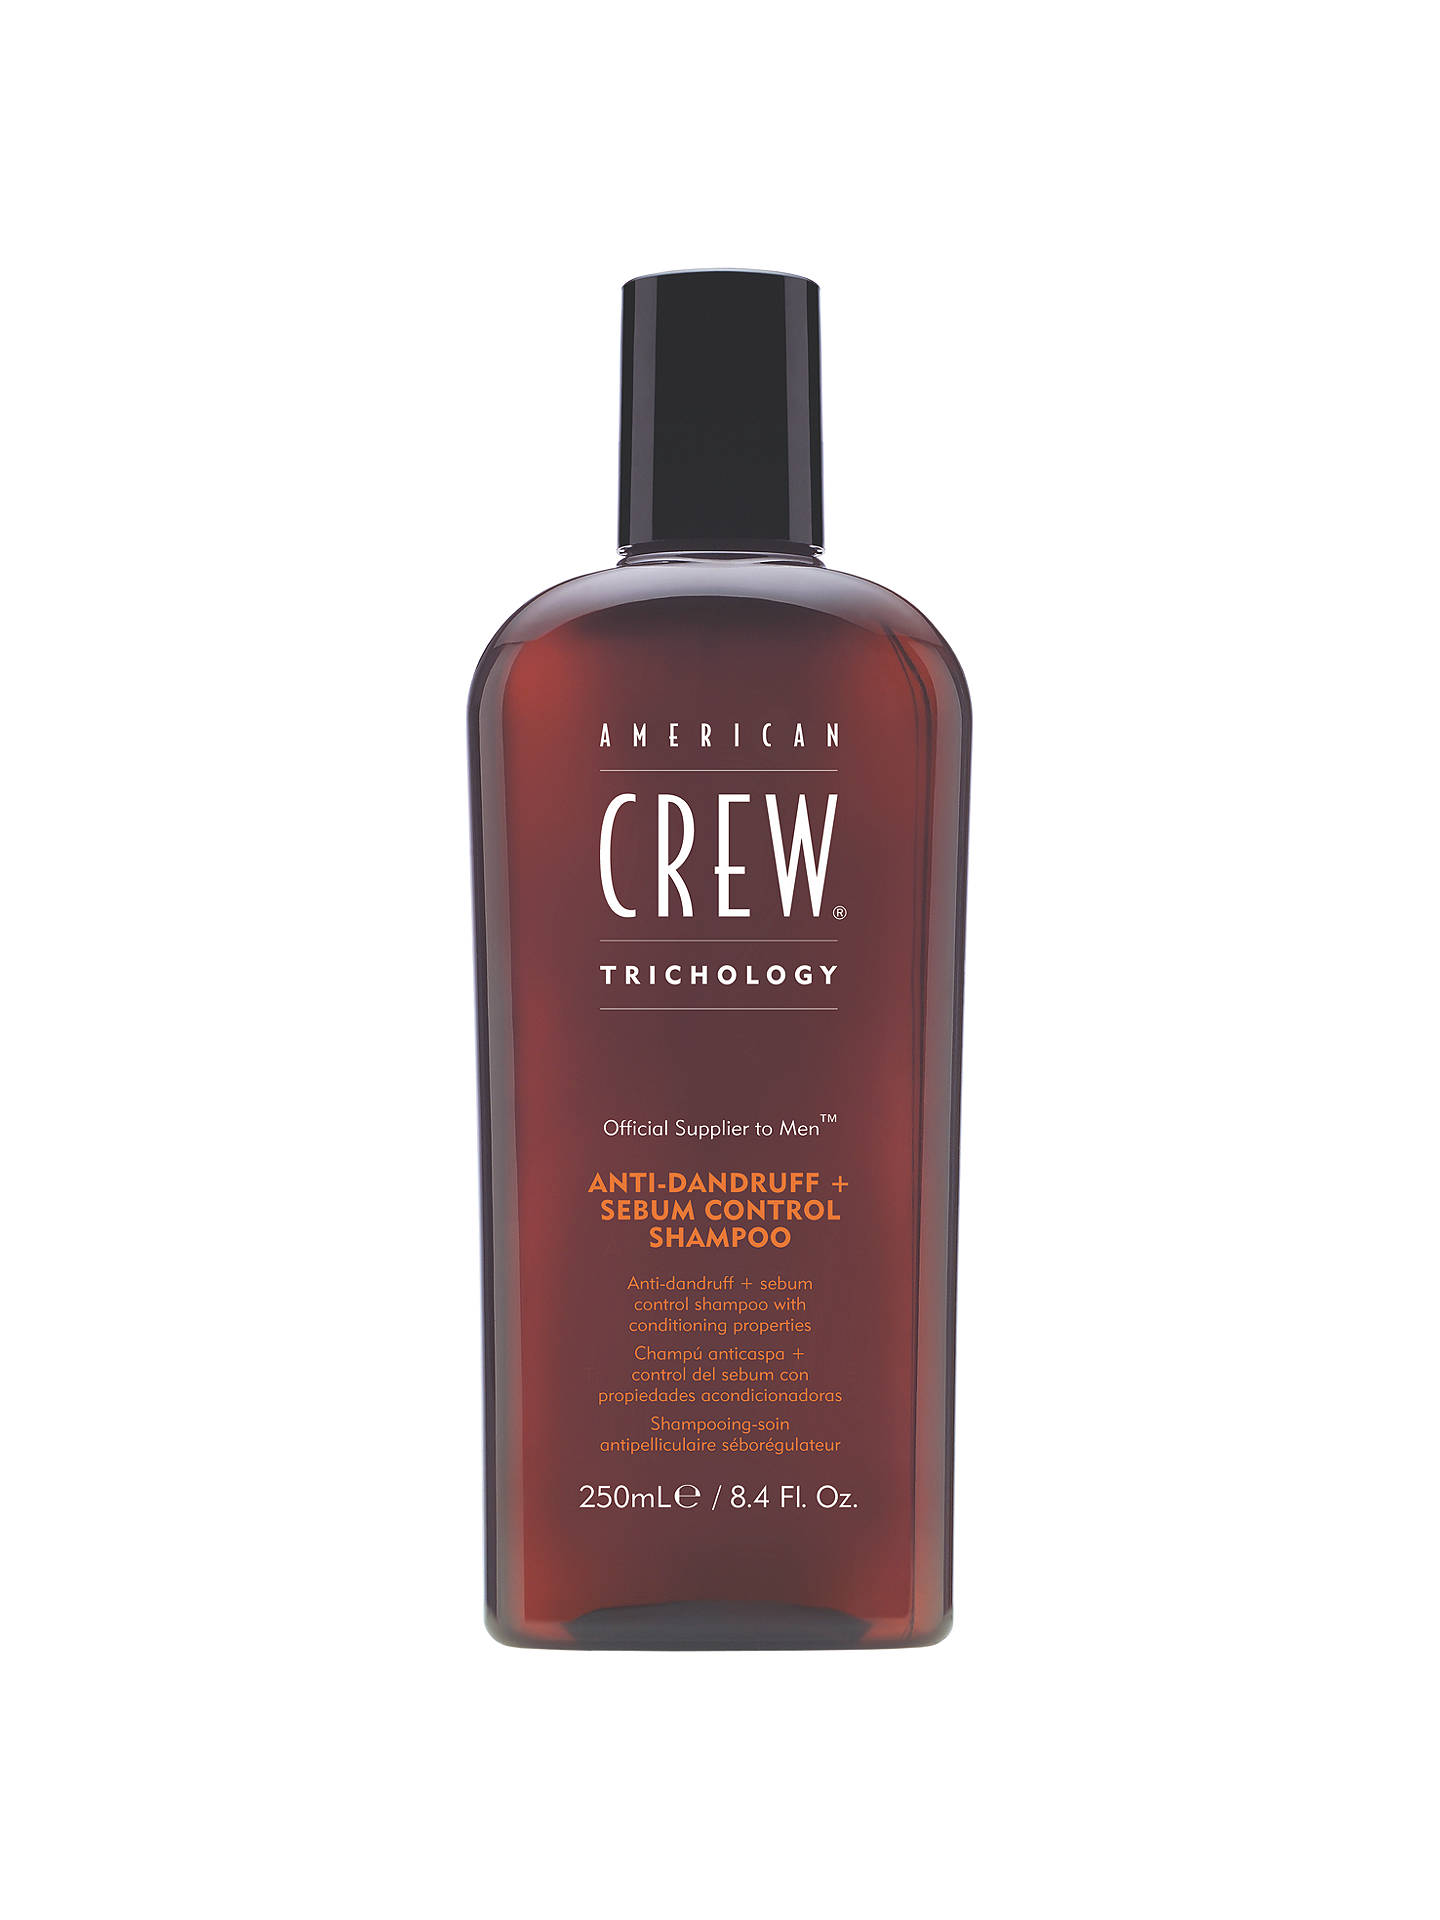 Buy American Crew Anti-Dandruff + Sebum Control Shampoo, 250ml Online at johnlewis.com